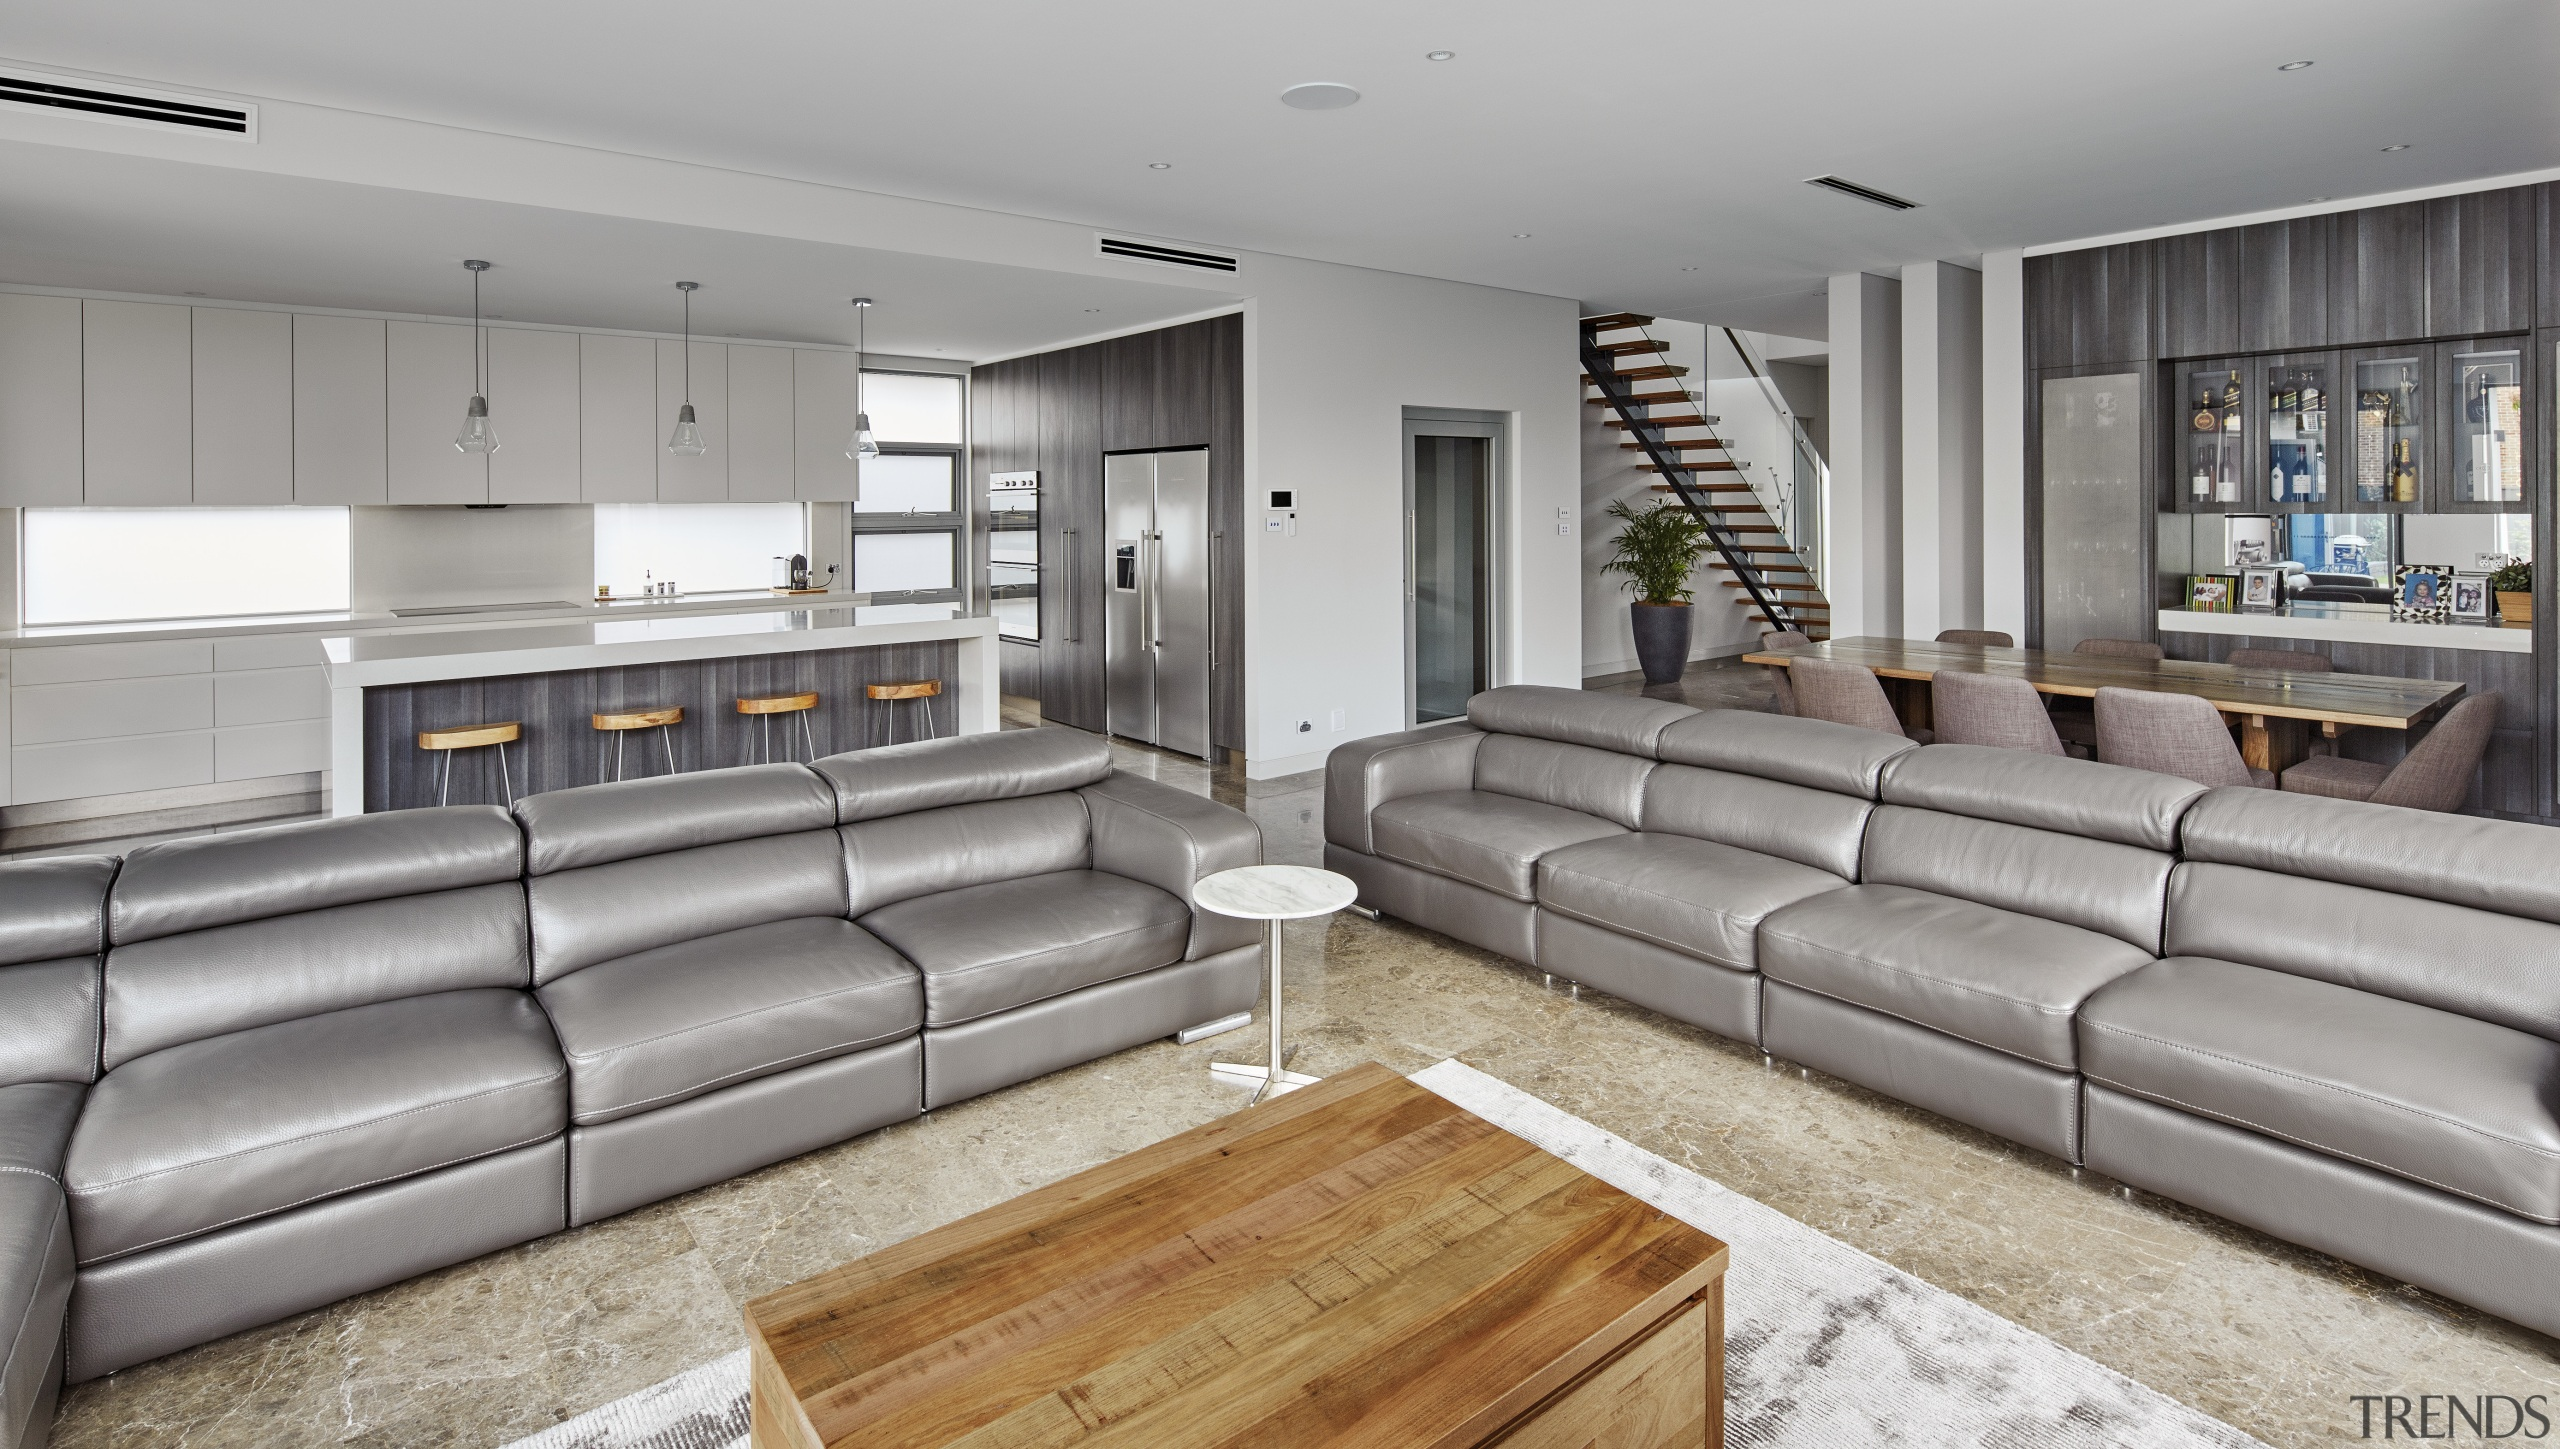 The interior spaces of this house built by interior design, living room, property, real estate, gray